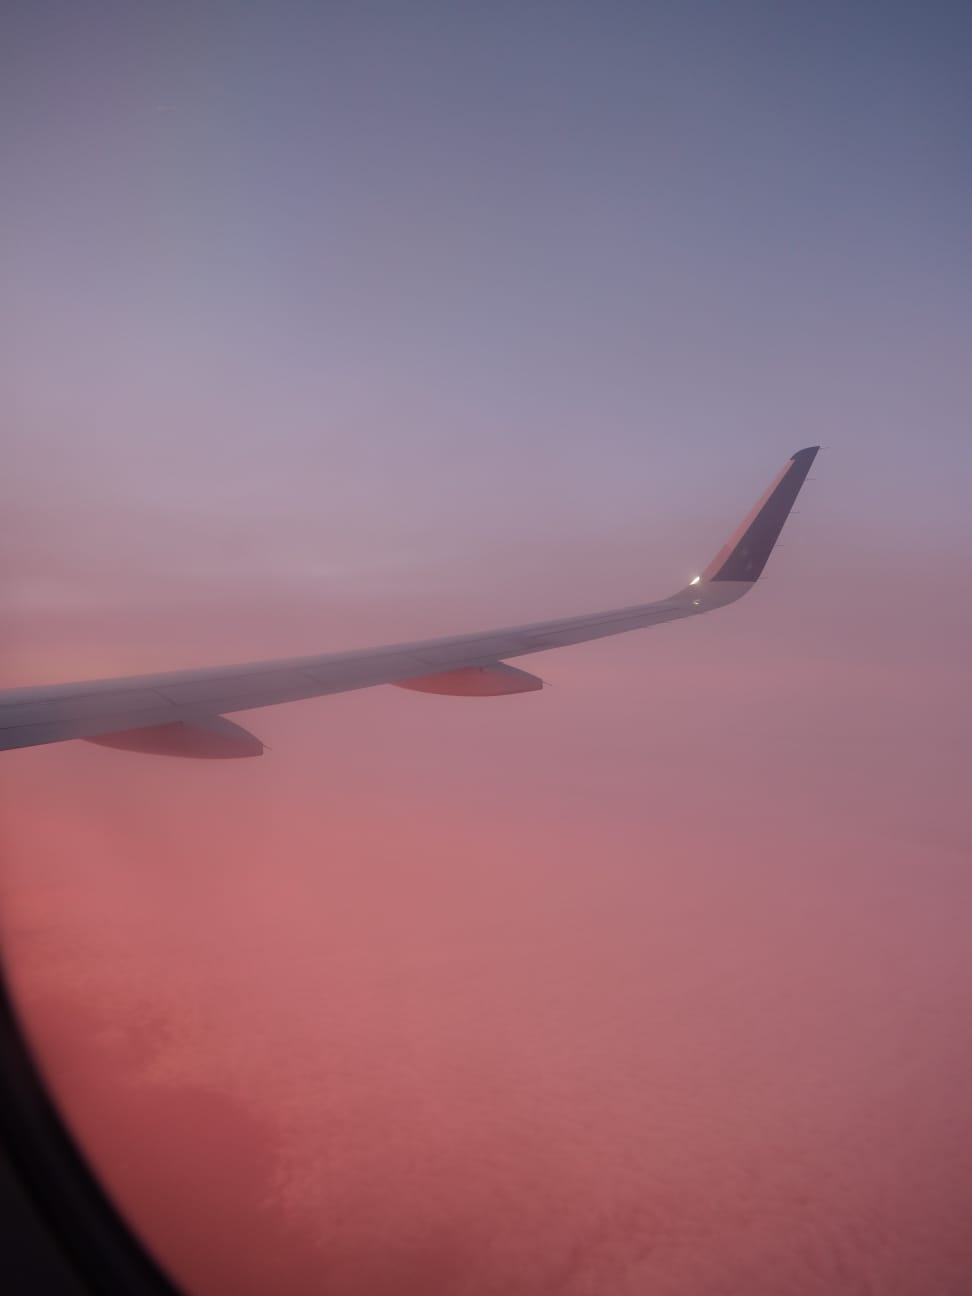 Sunrise on a plane. Photo by: Sarah Funk